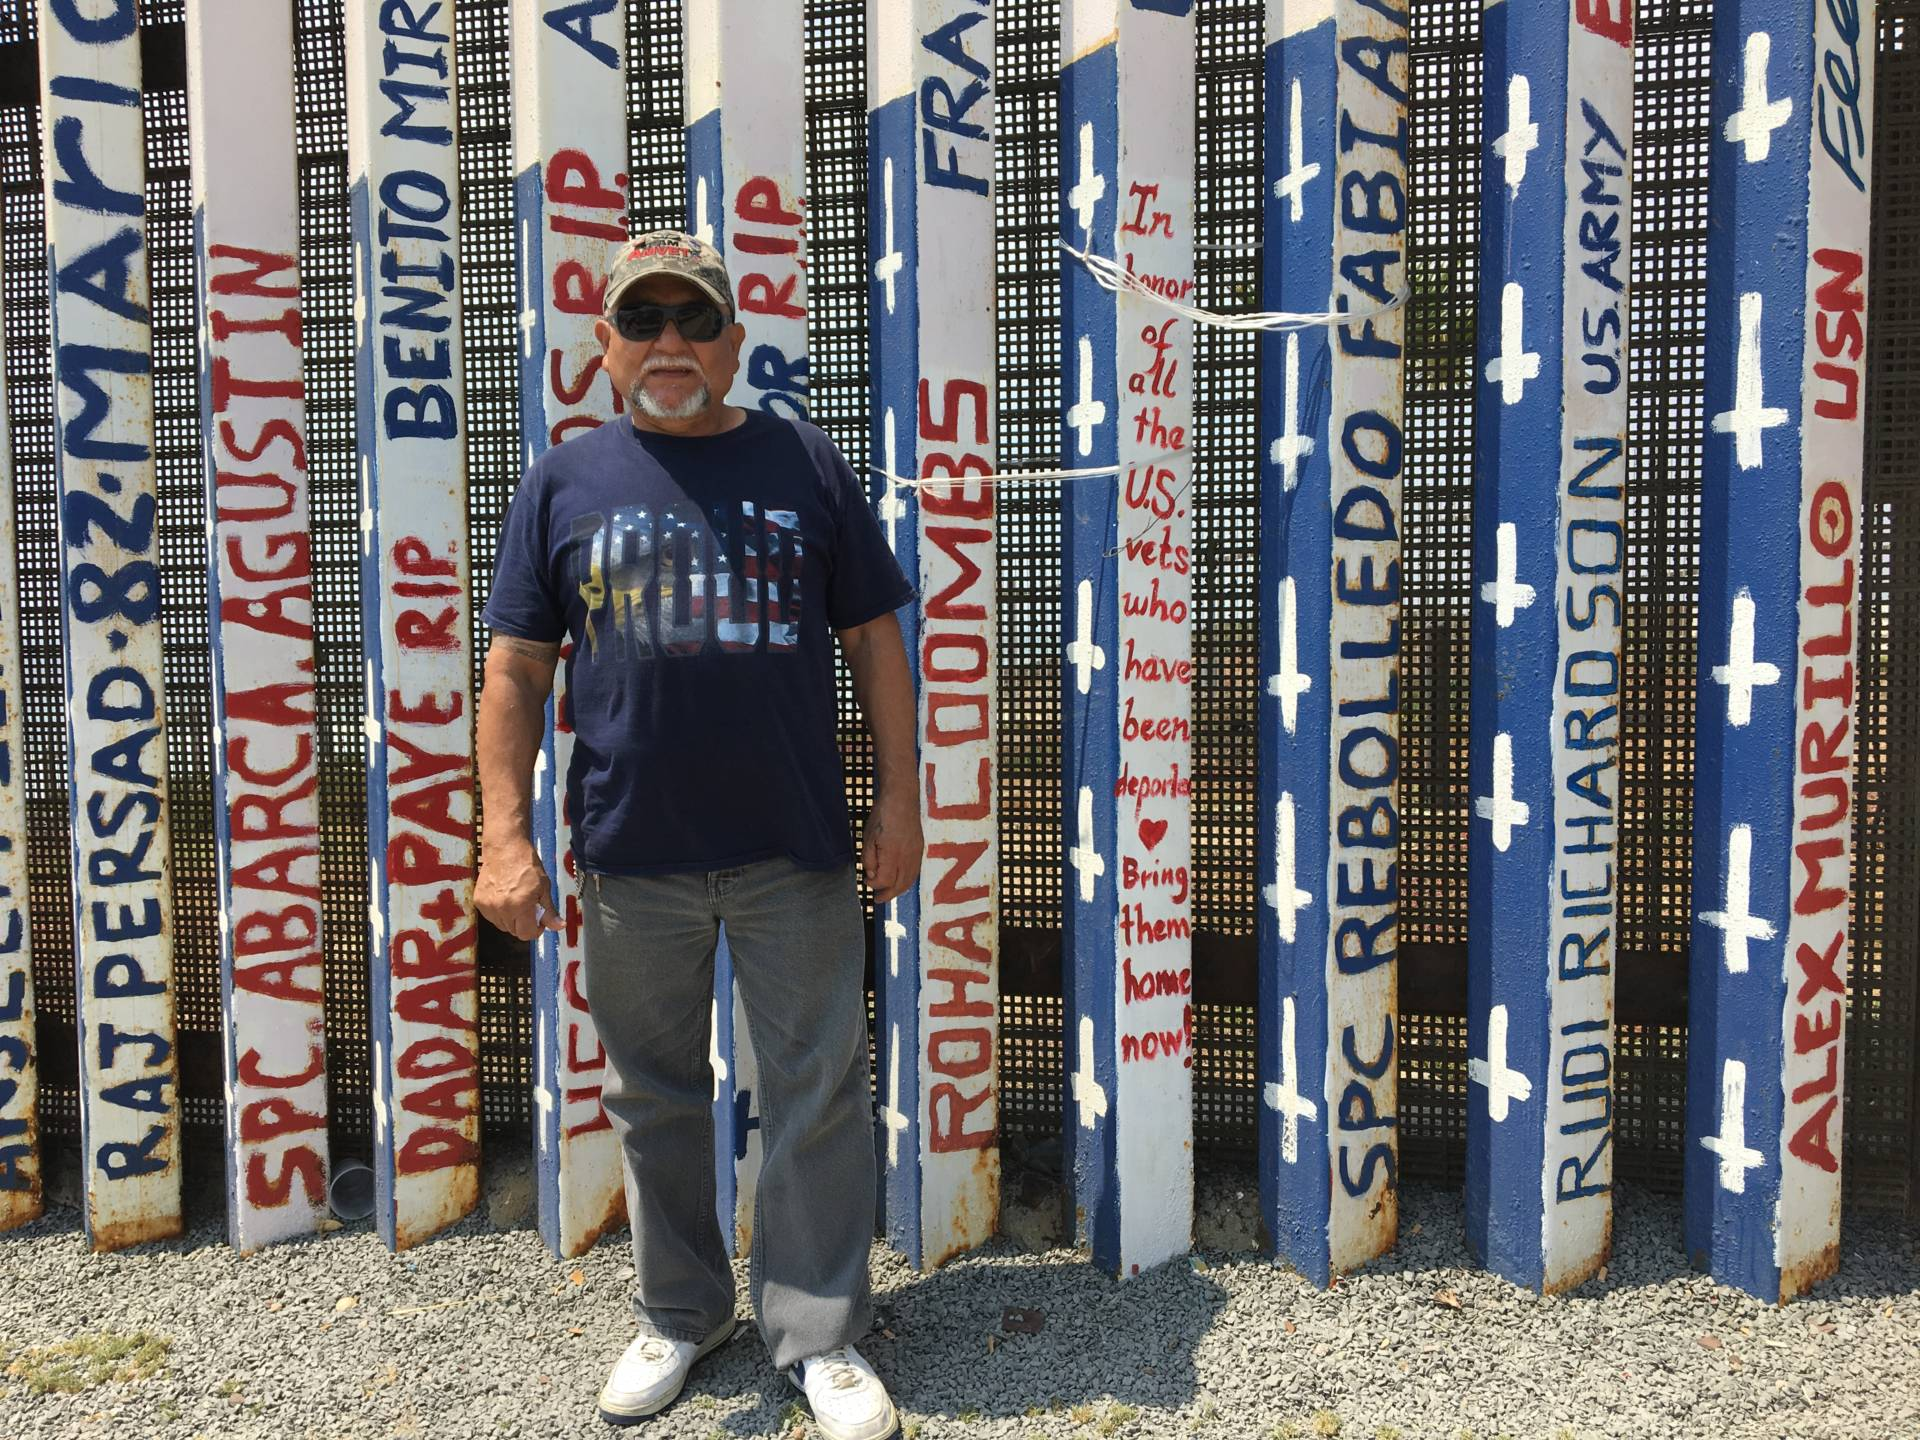 Jose Cardenas, 67, stands at U.S.-Mexico border fence in Tijuana that has been painted with the names of deported U.S. veterans. Cardenas was drafted into the U.S. Army in 1970, served seven years in the U.S. military and was deported in 2009 after a drug conviction.  Erika Aguilar/KQED News